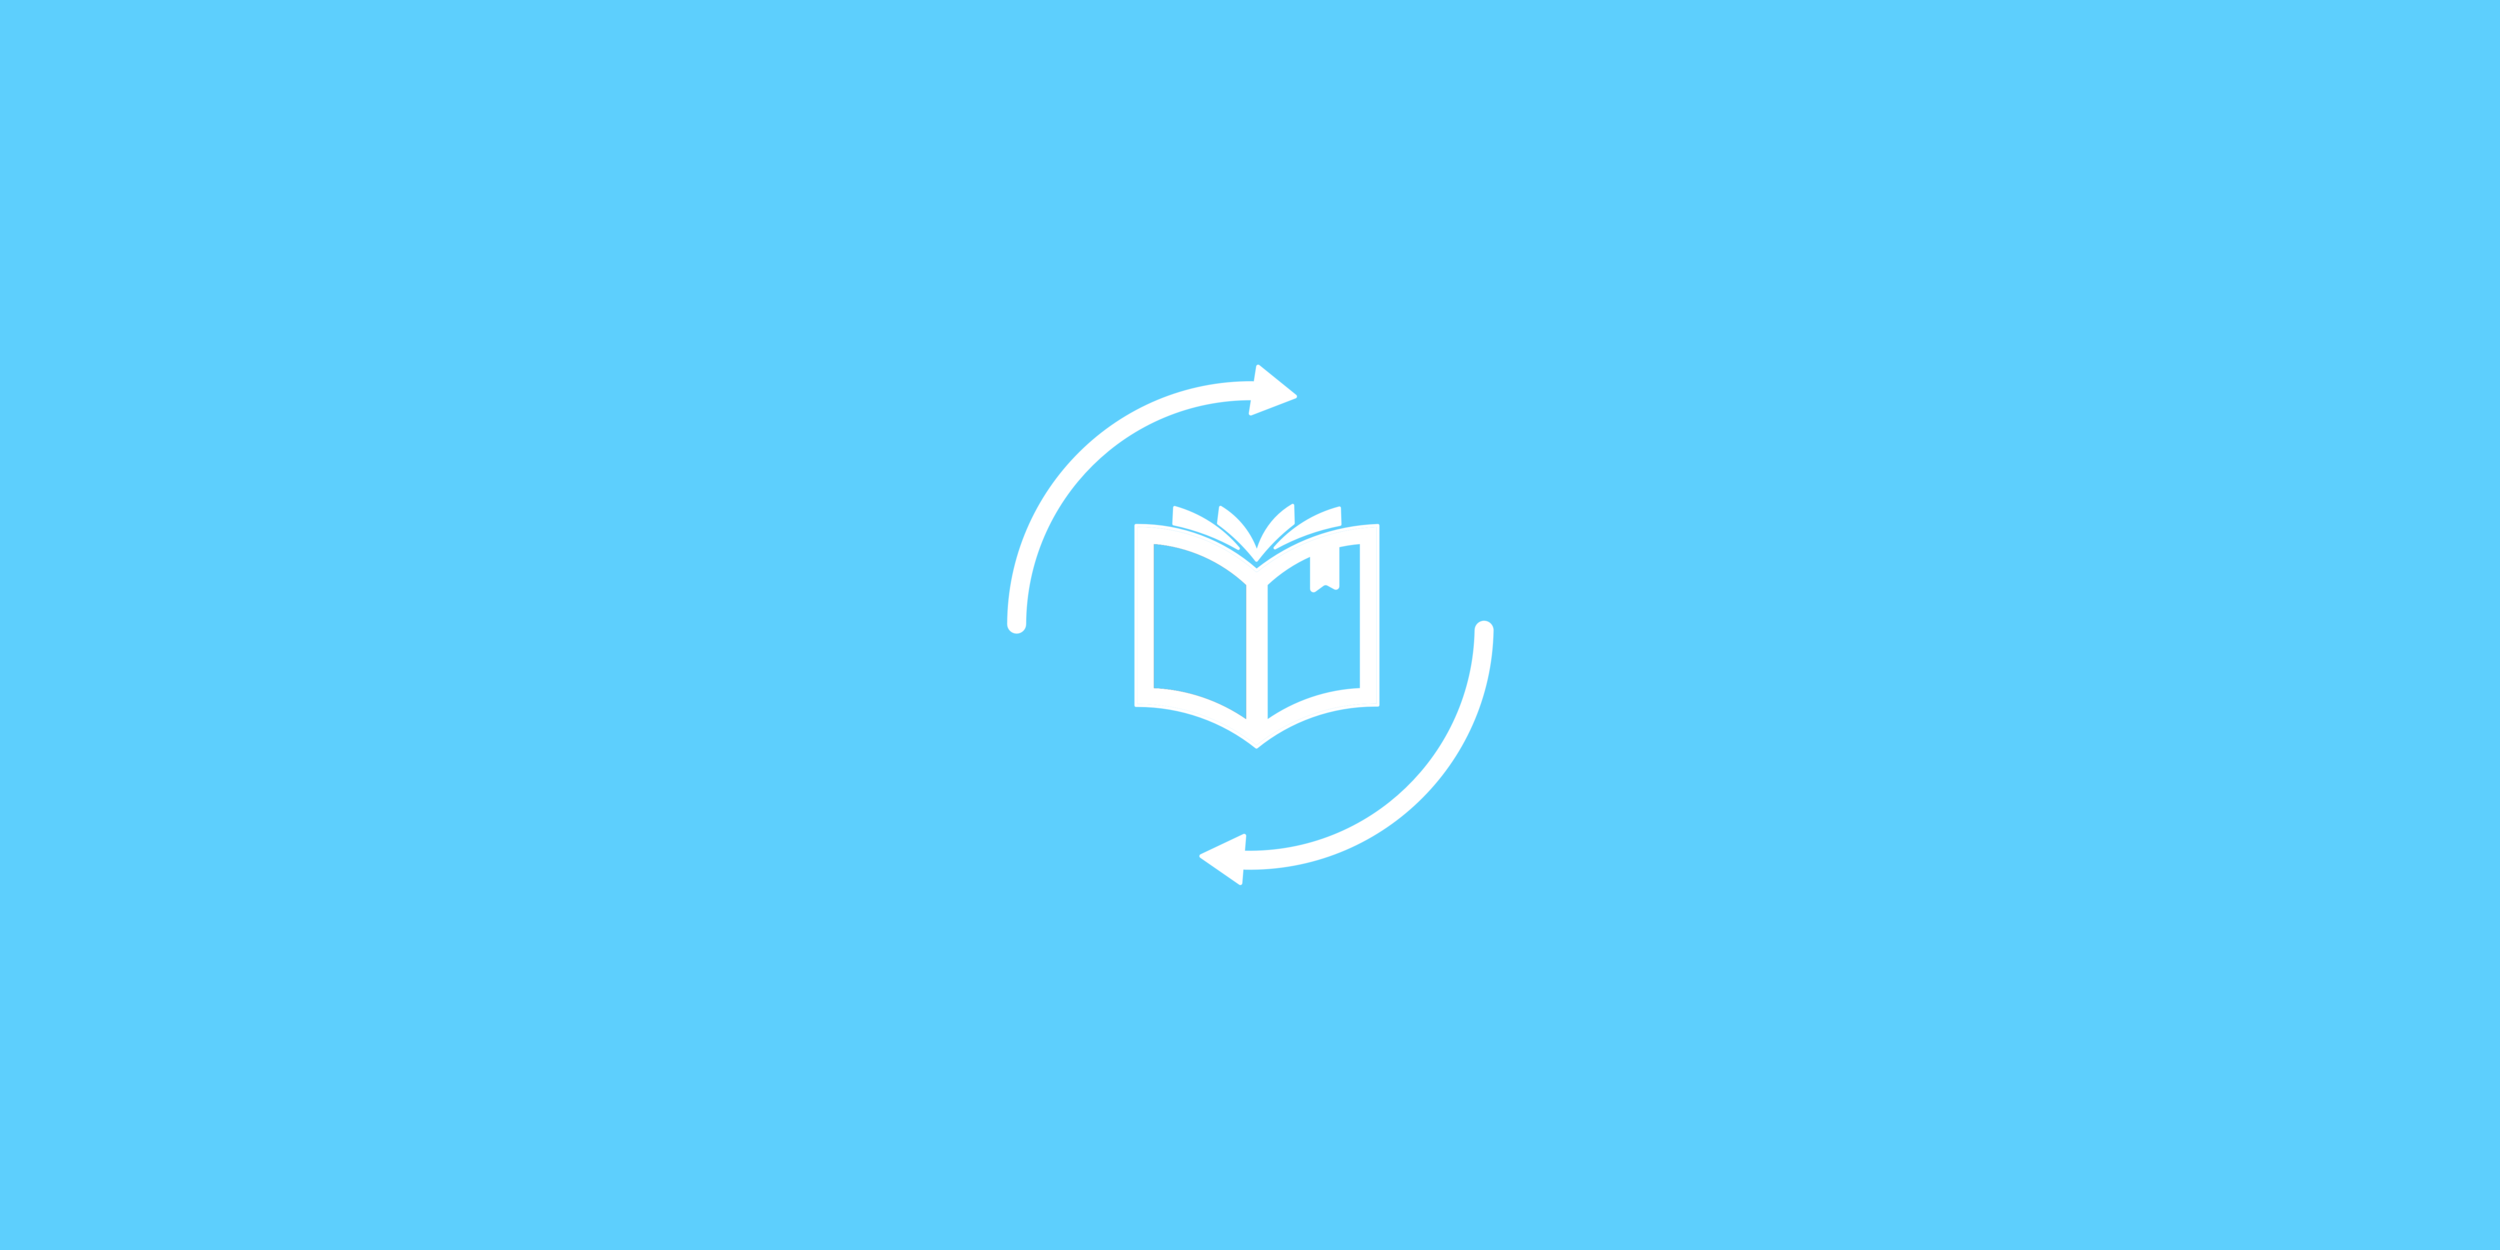 Bhuku - An app designed with book lovers in mind. The app allows users to easily discover new books, manage their books, see what their friends are reading, and even share copies of their paperback books with friends.